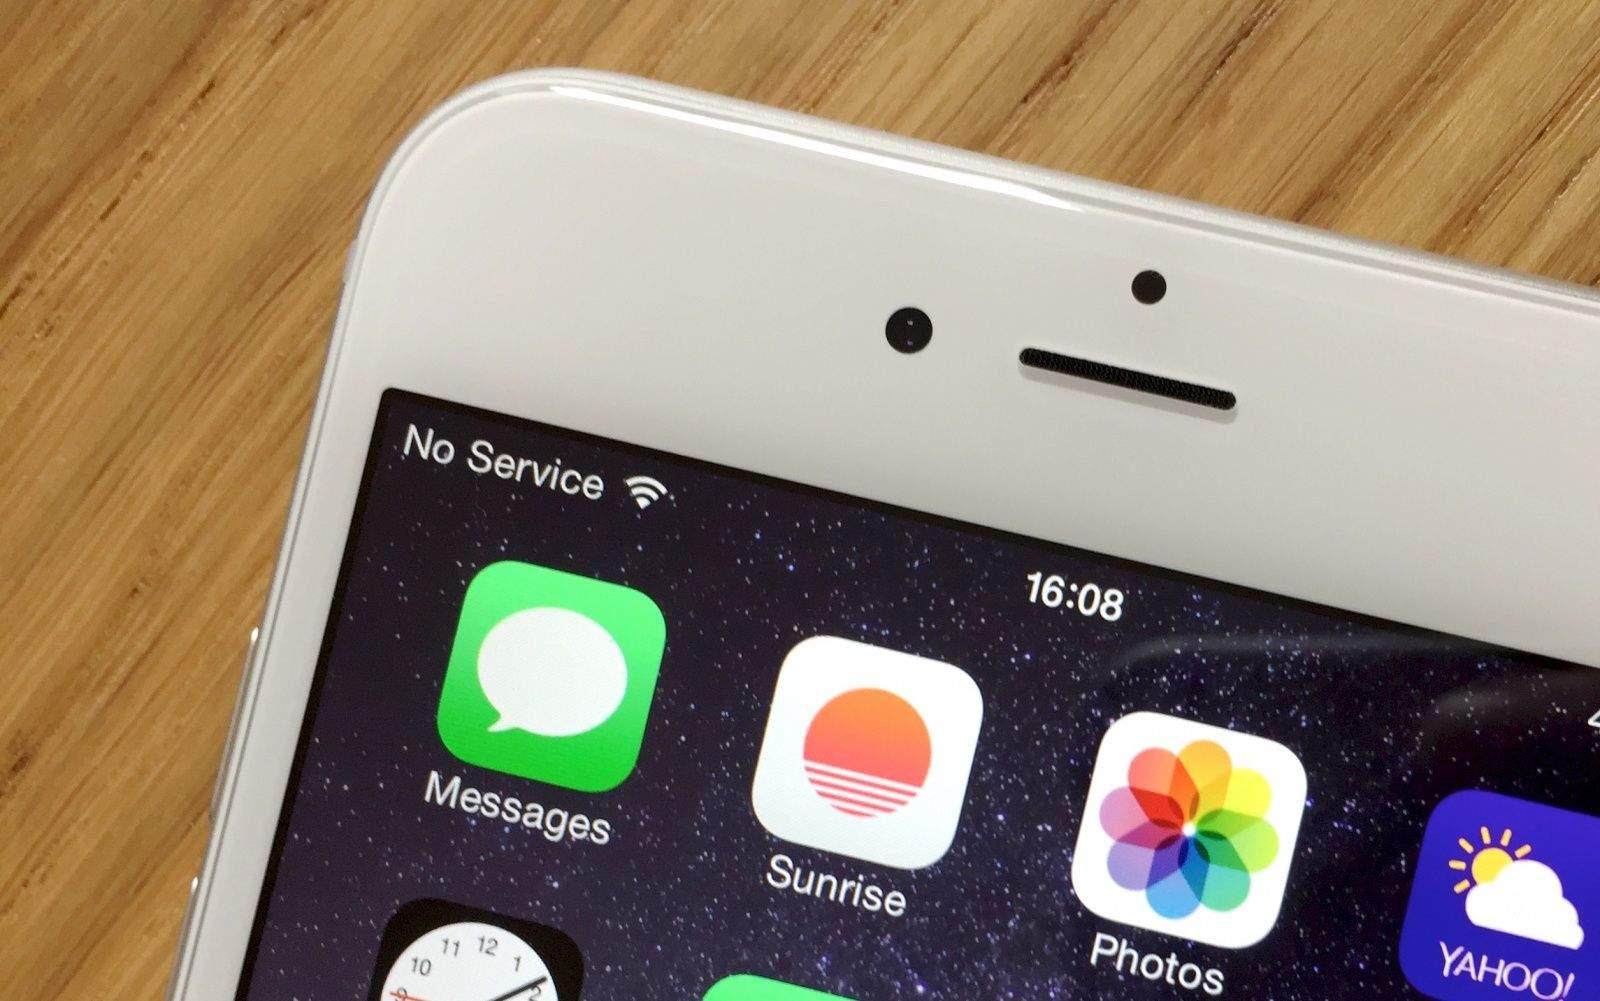 The iPhone 6s and iPhone 6s plus are coming on September 18th, according to German carriers.